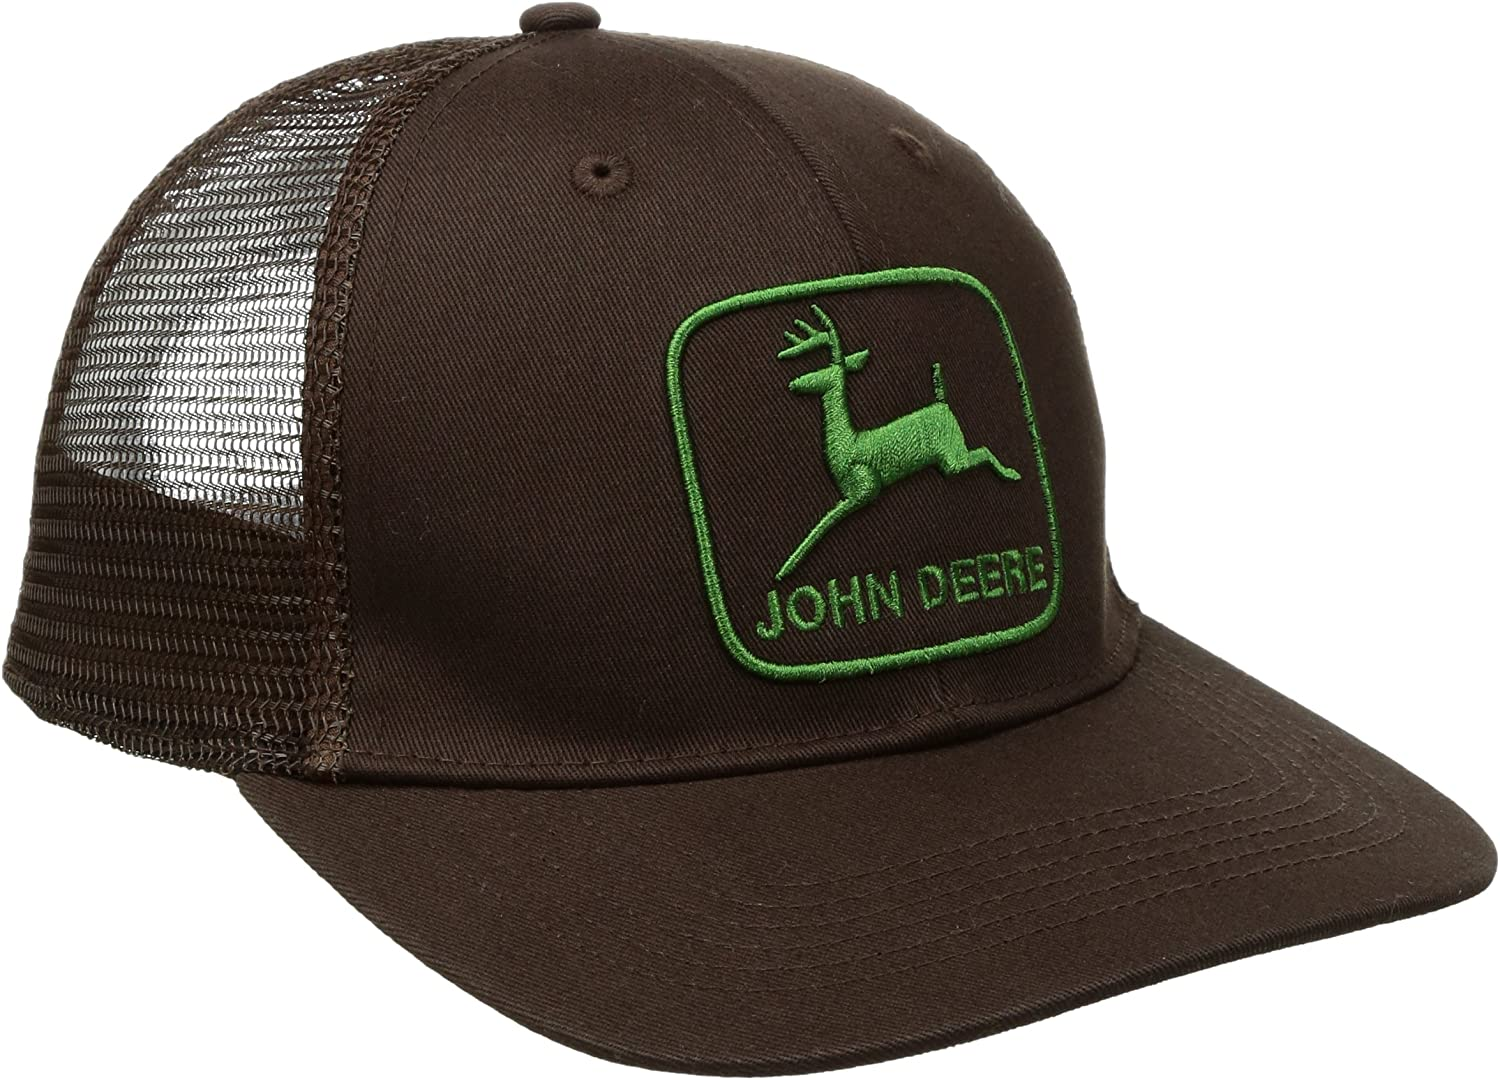 John Deere Mens Stretch Band Cap Mesh Back: Amazon.es: Ropa y ...